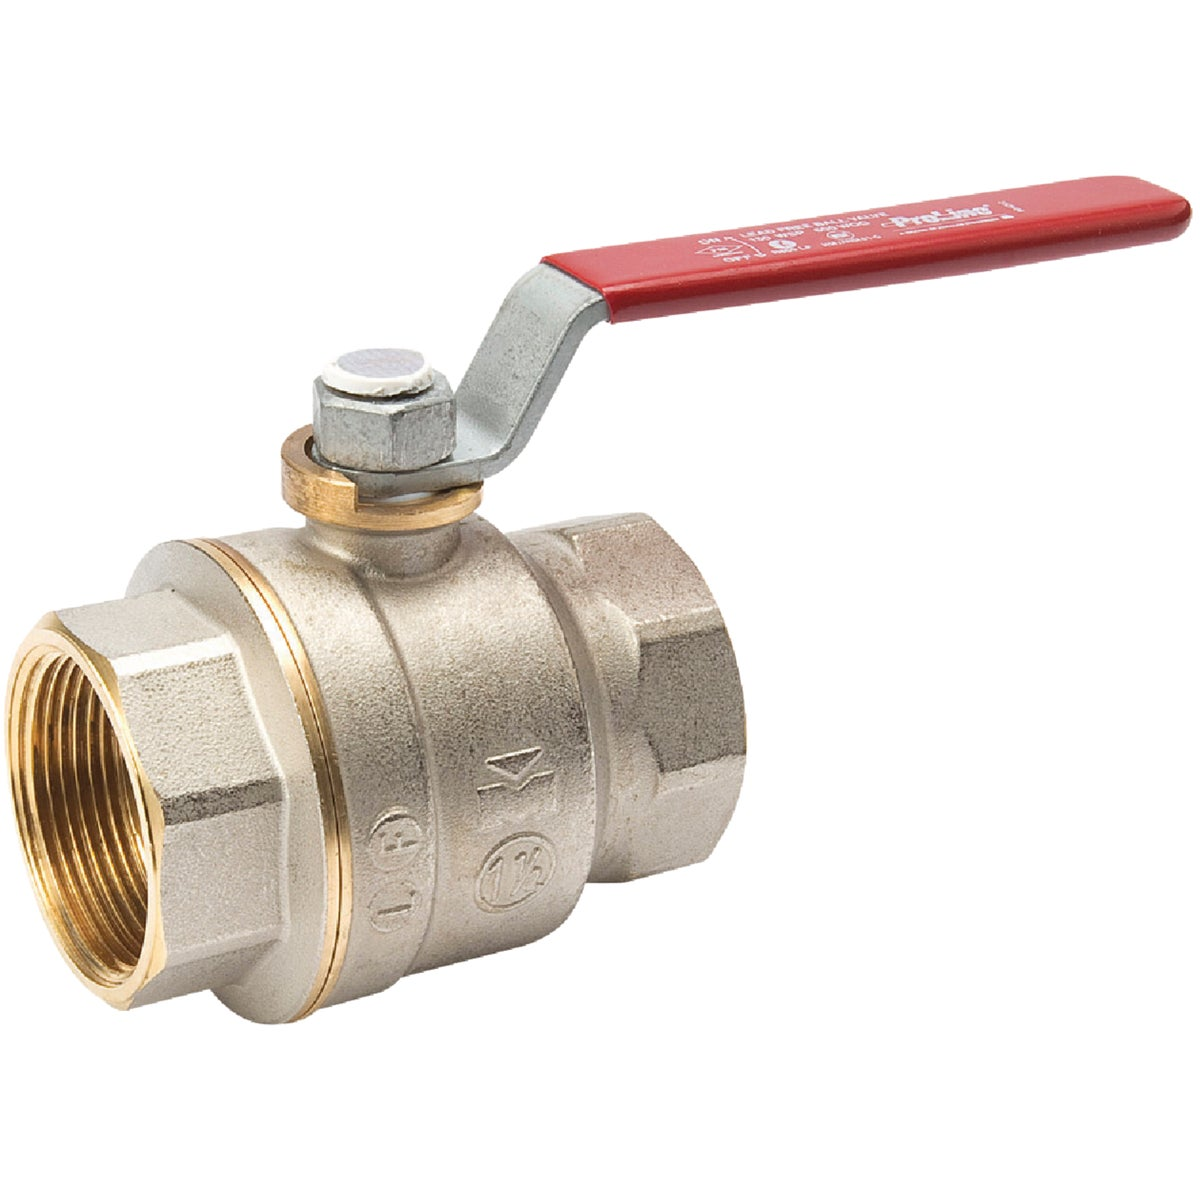 "1-1/2"" CHROME BALL VALVE - 107-007NL by Mueller B K"